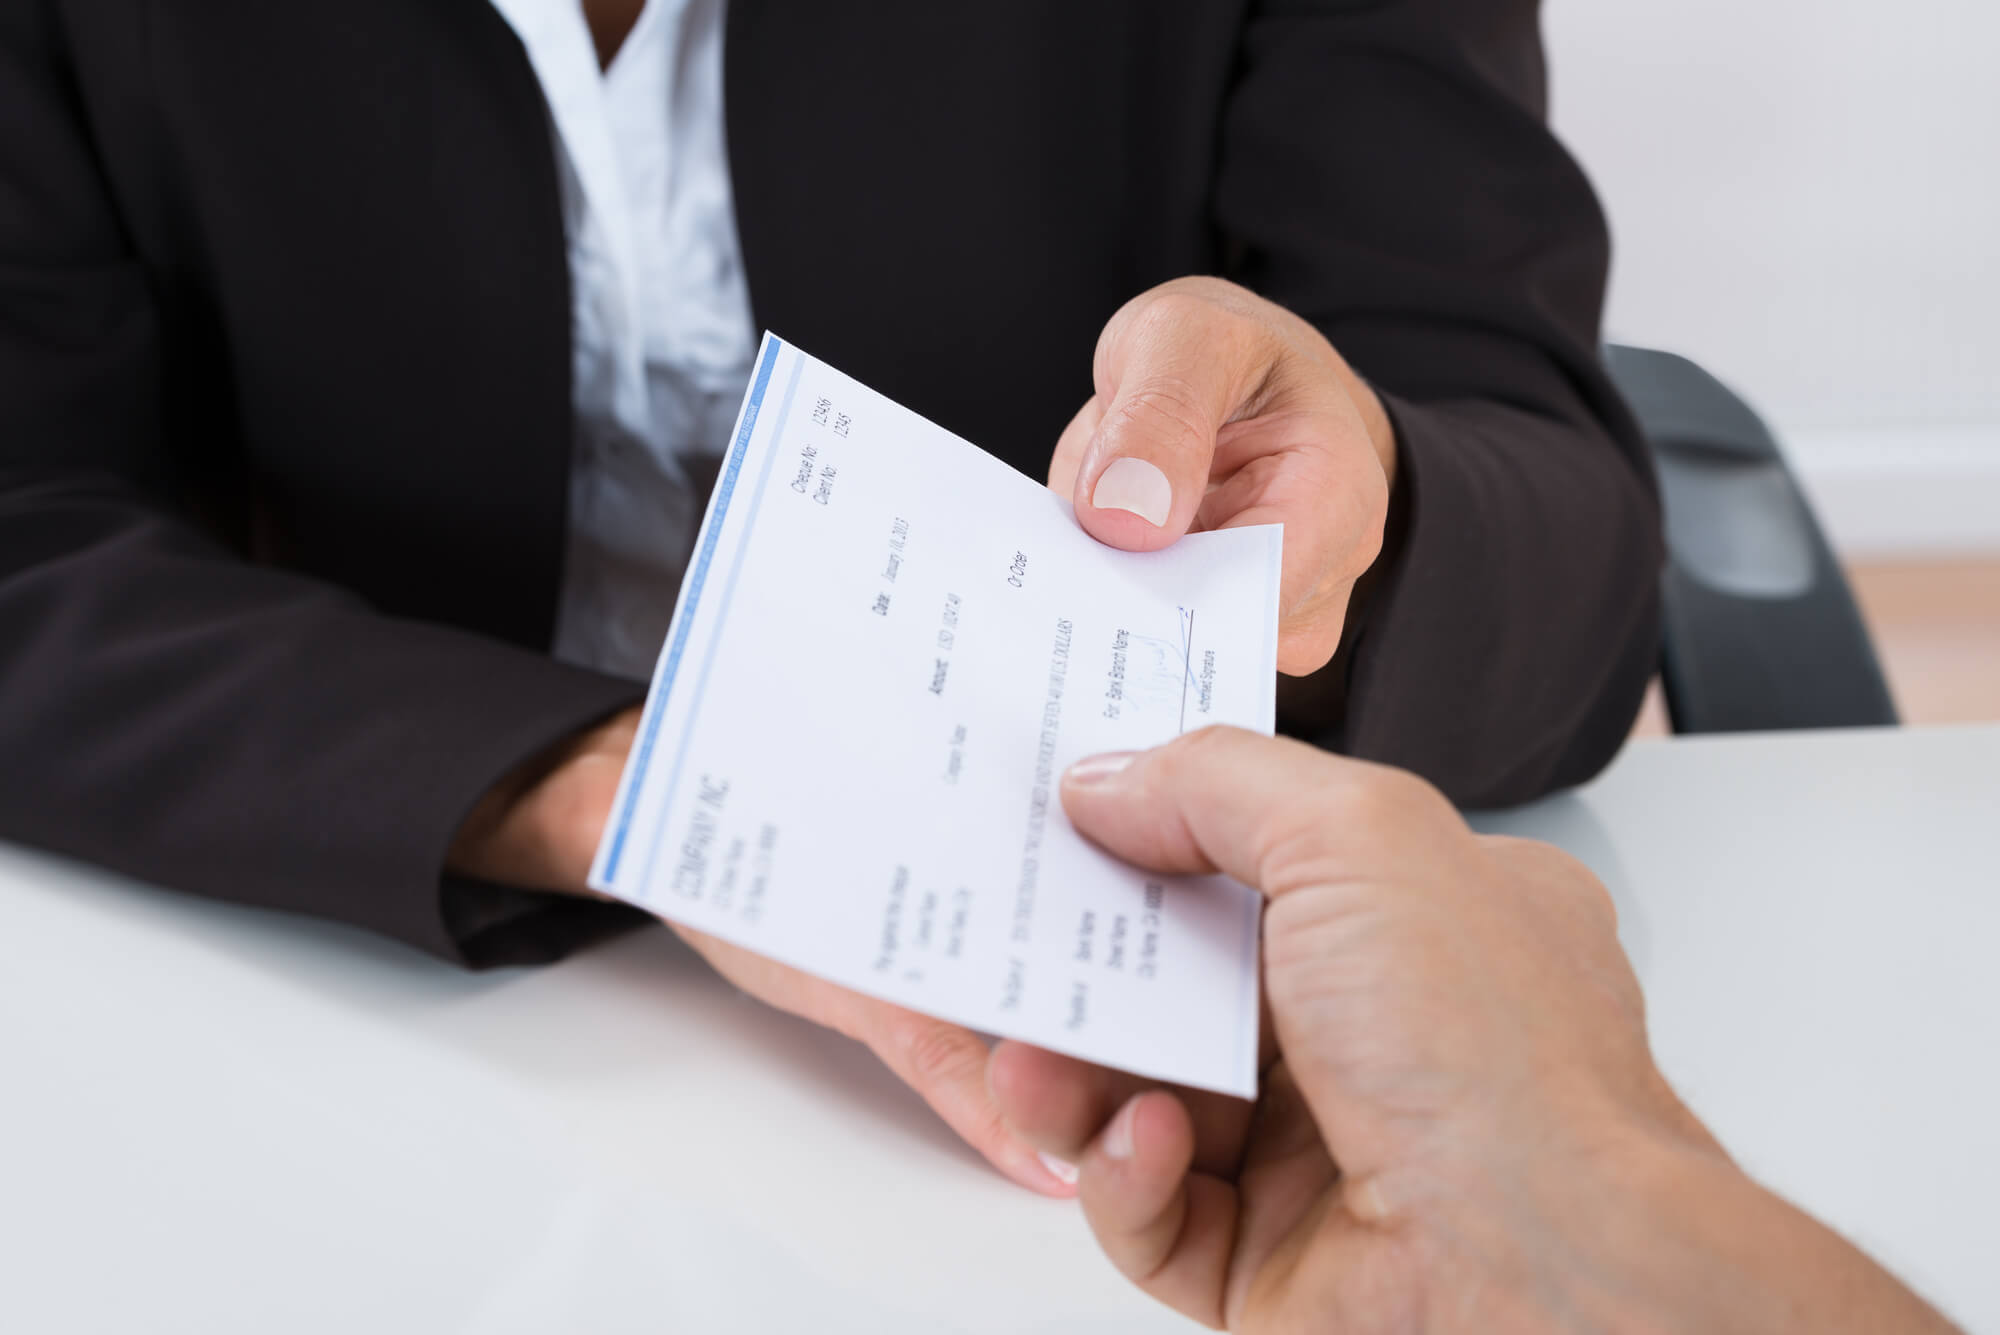 Close-up, first-person view of a hand reaching out to accept a paycheck being handed over by another person wearing a suit.